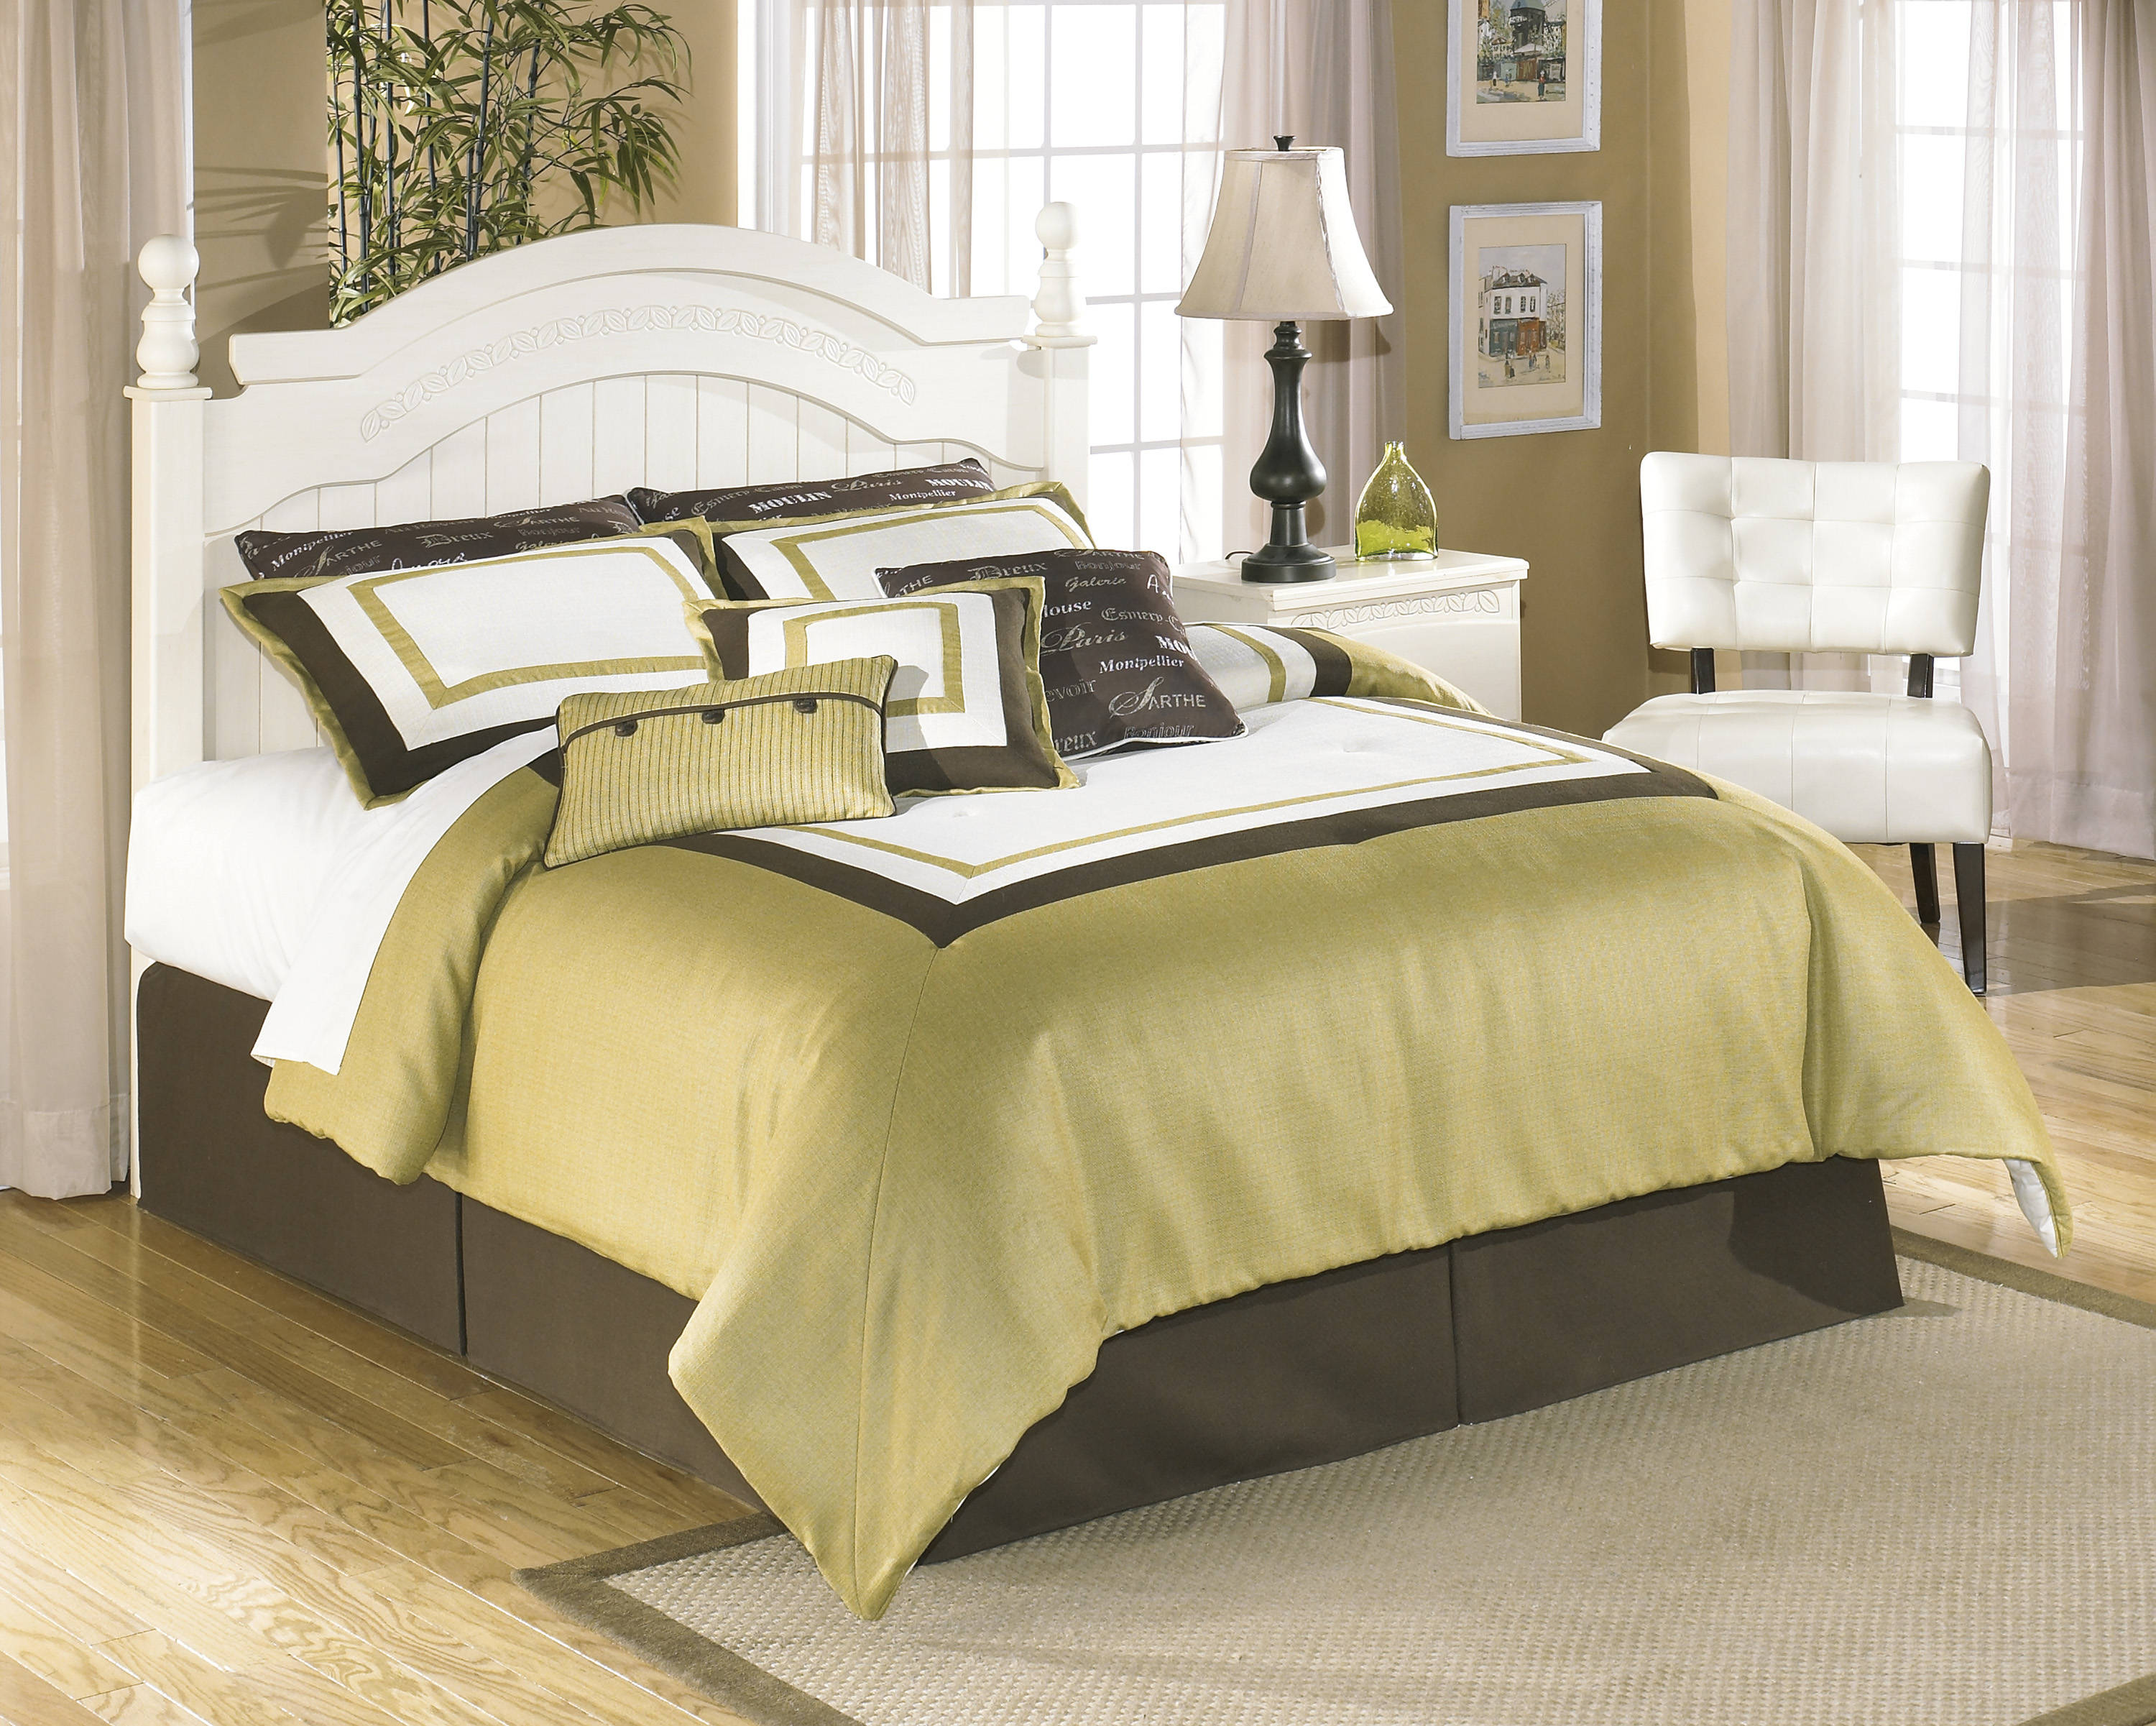 Ashley Furniture Cottage Retreat Queen Full Poster Headboard ...